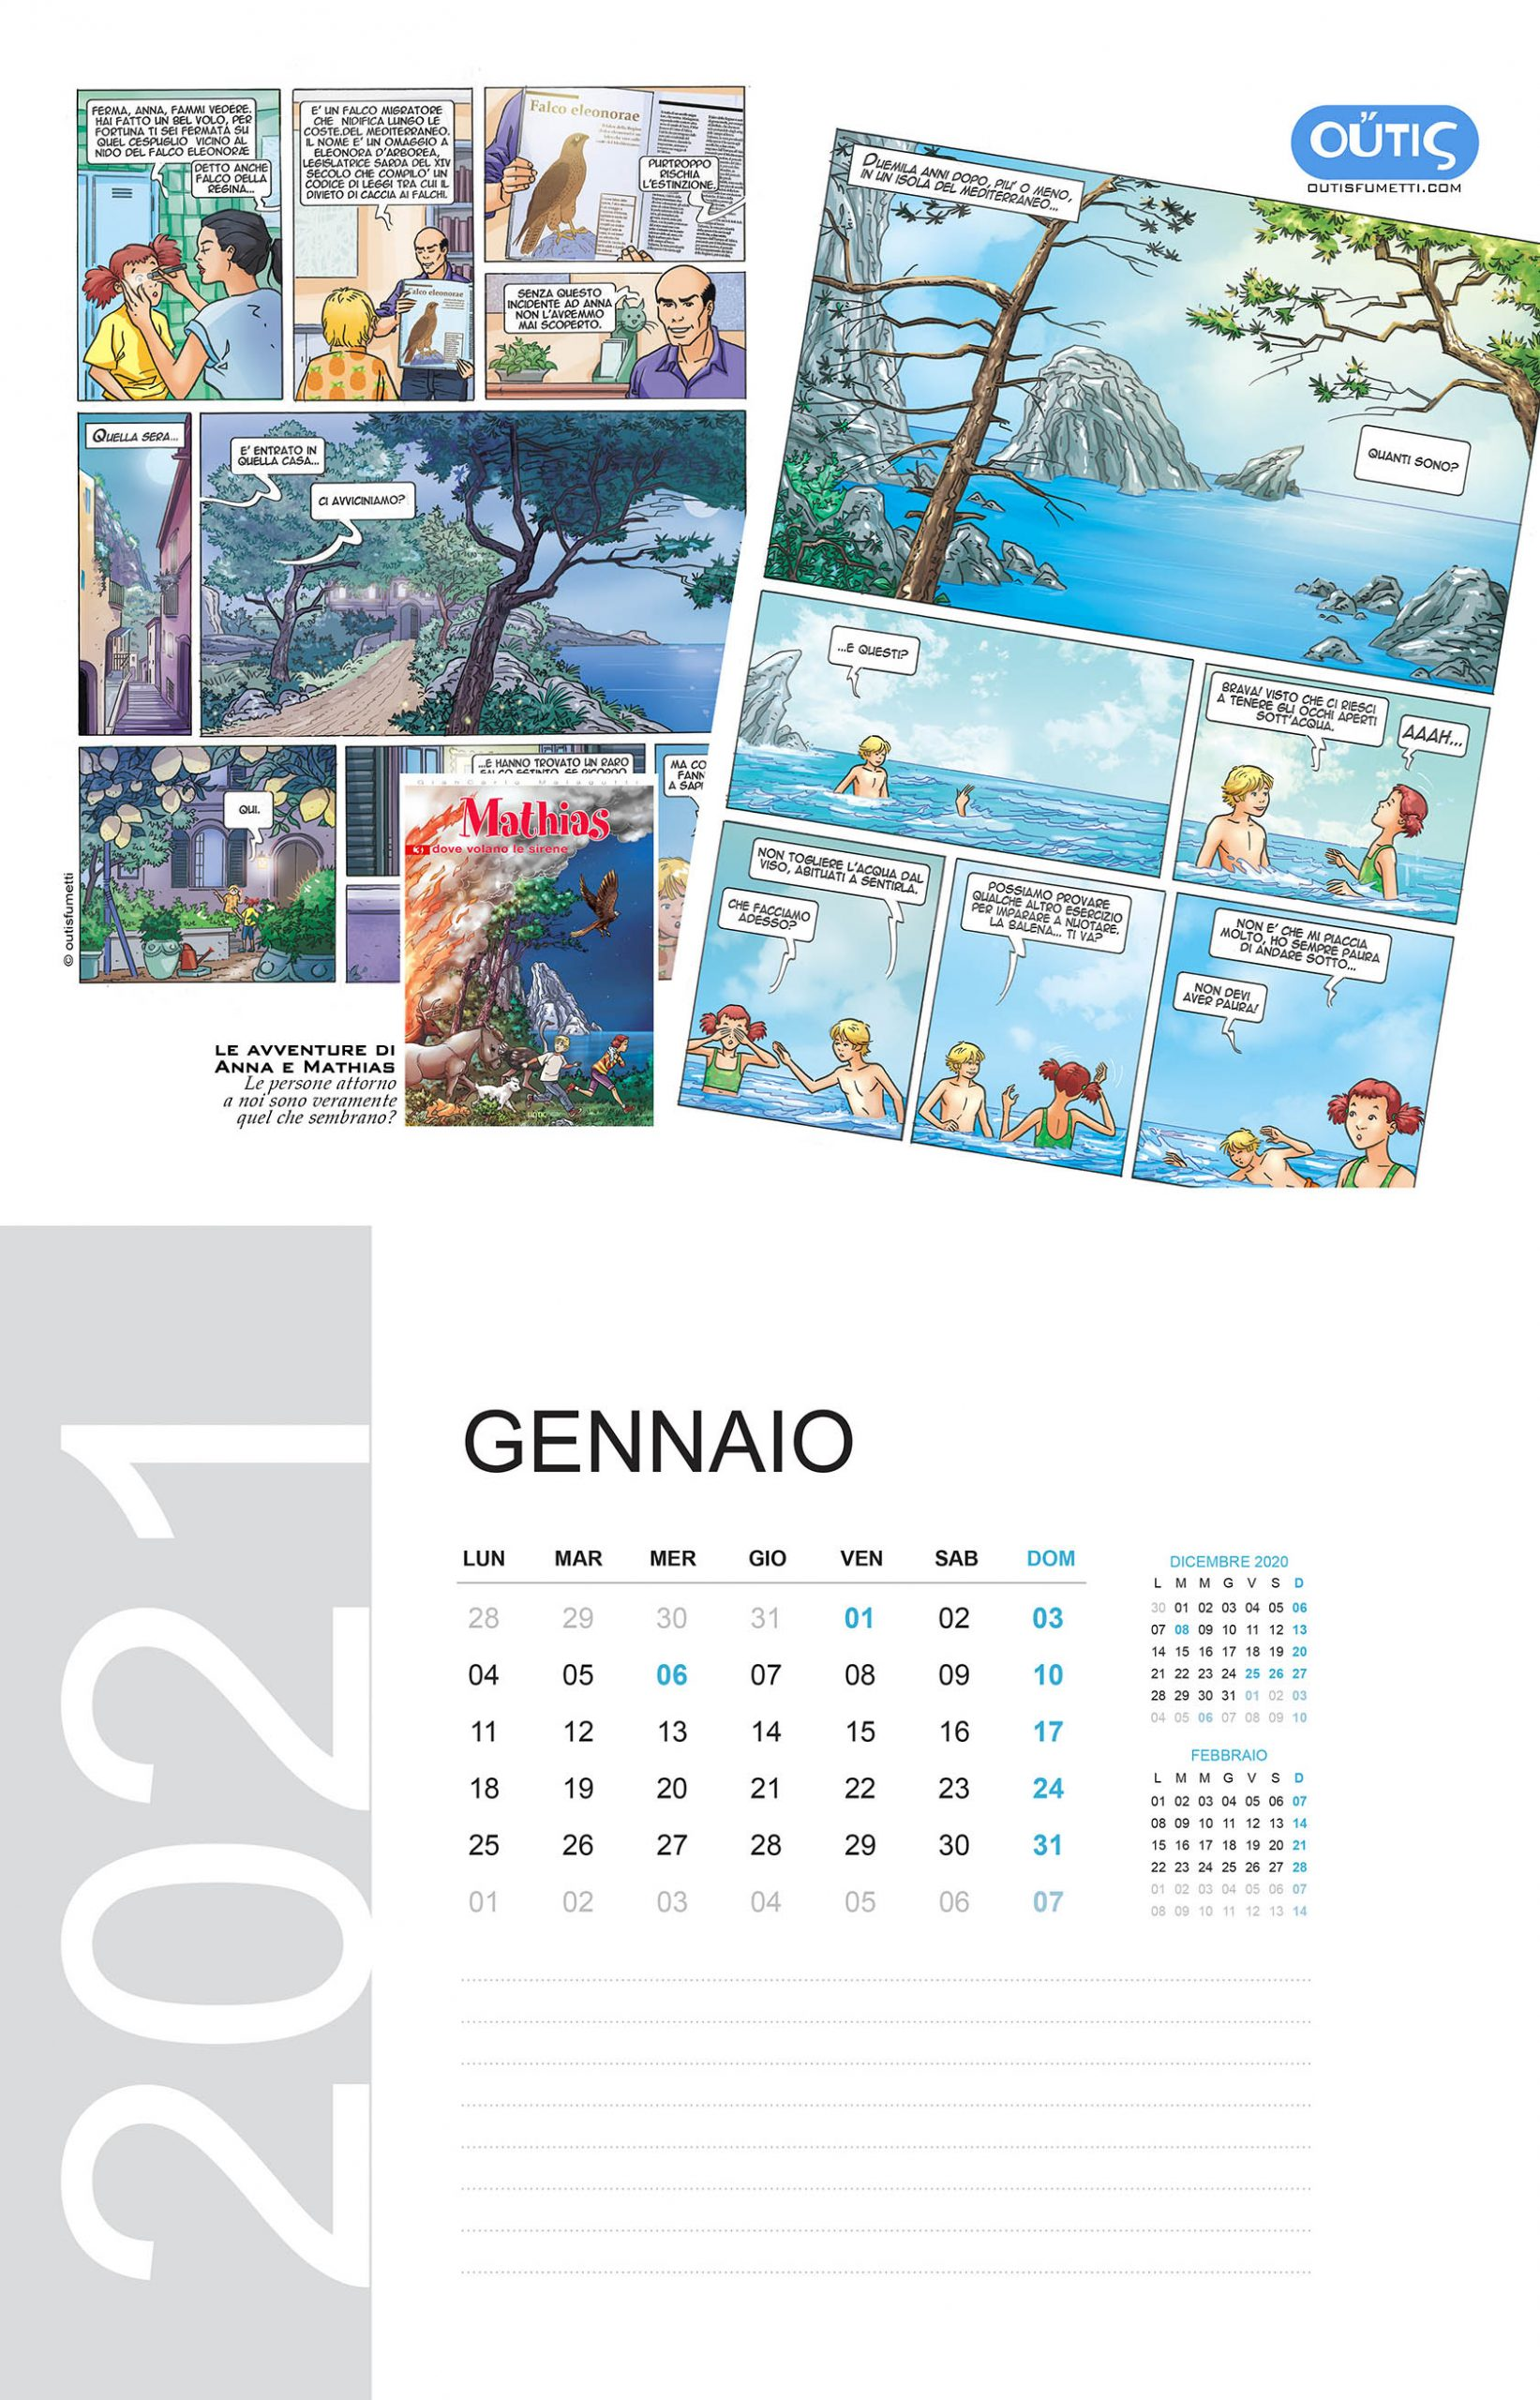 January with Outis Fumetti